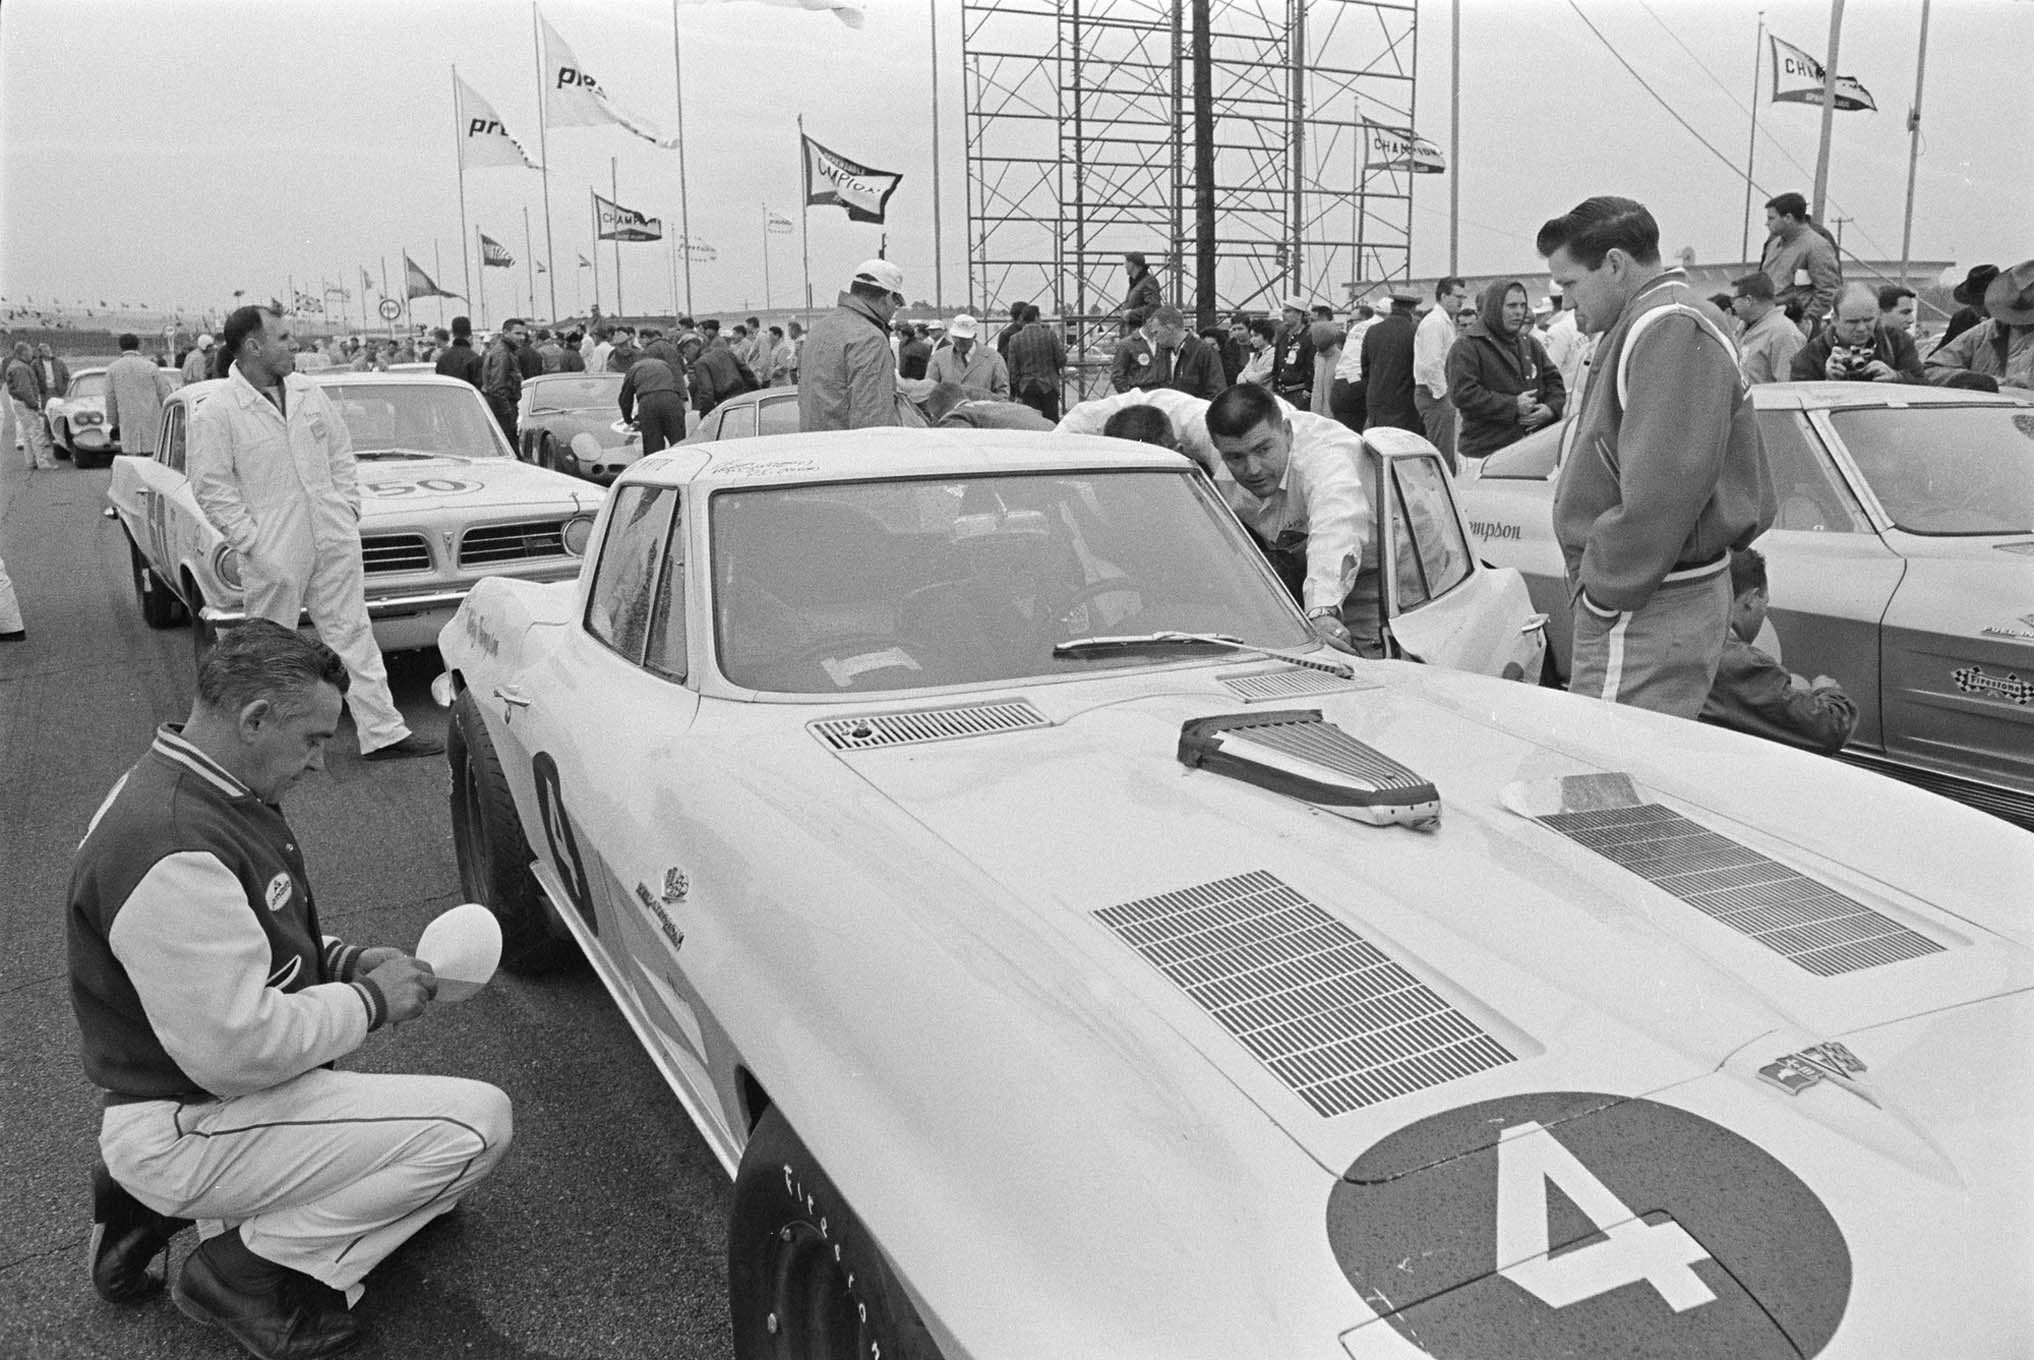 White's No. 4 car did have one thing Johnson and Krause's No. 3 didn't: a windshield wiper.